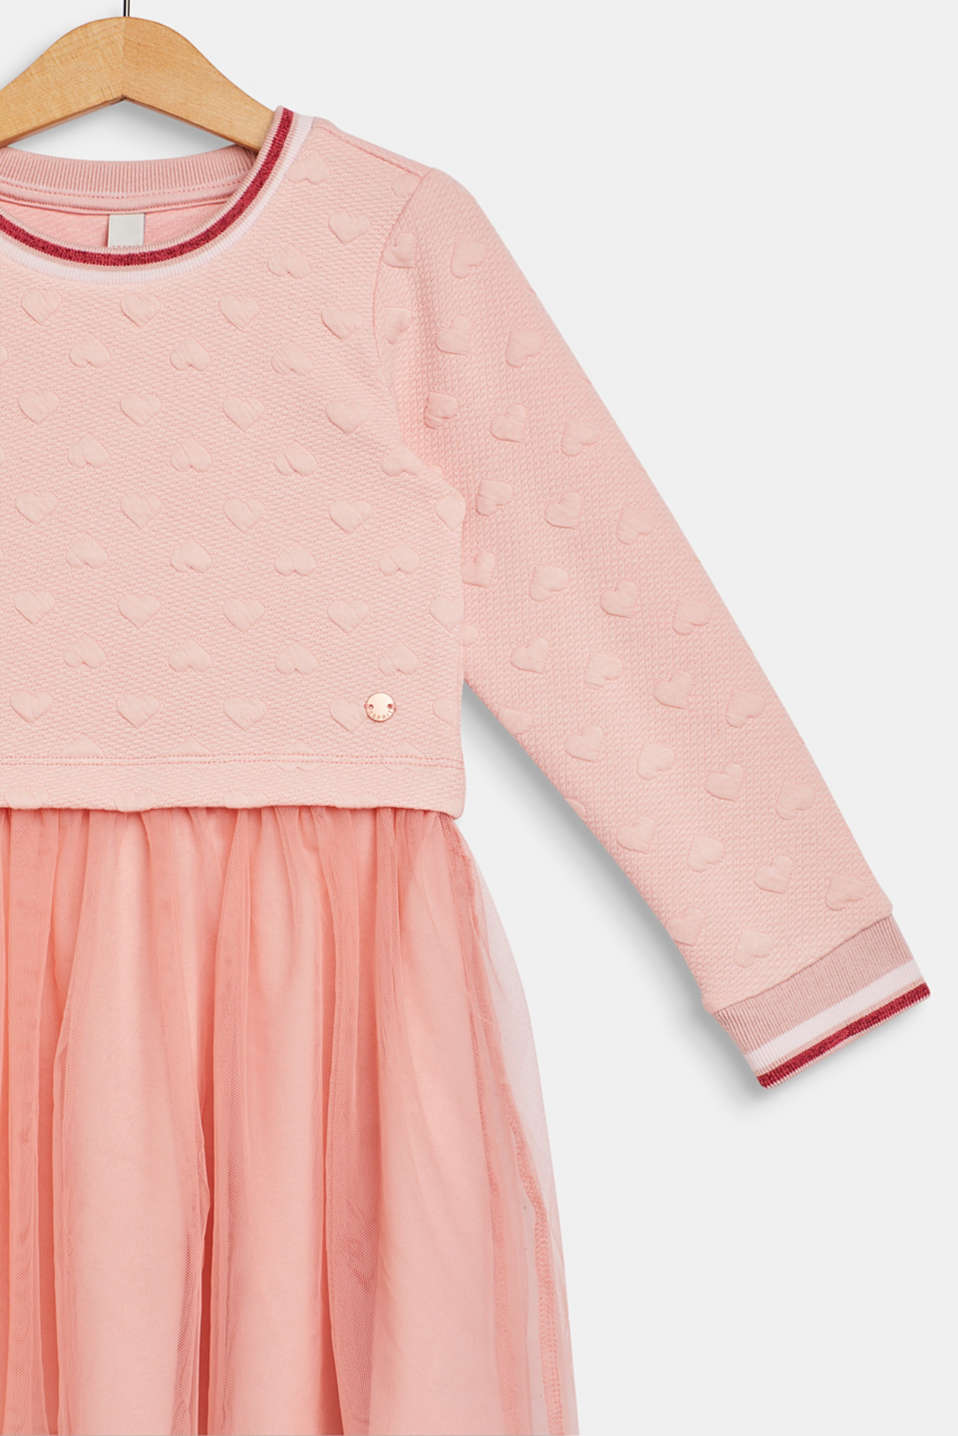 Sweatshirt fabric dress with a mesh skirt, LIGHT BLUSH, detail image number 2